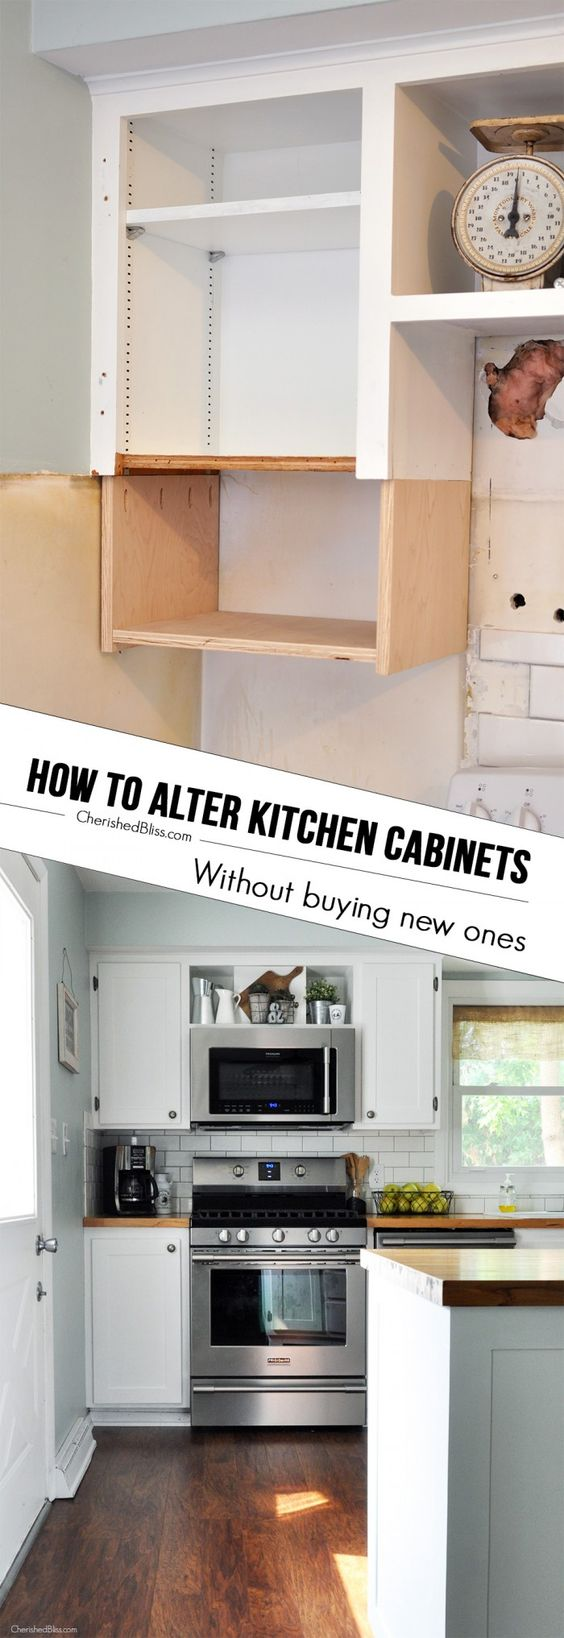 248 How to Alter Kitchen Cabinets via simphome